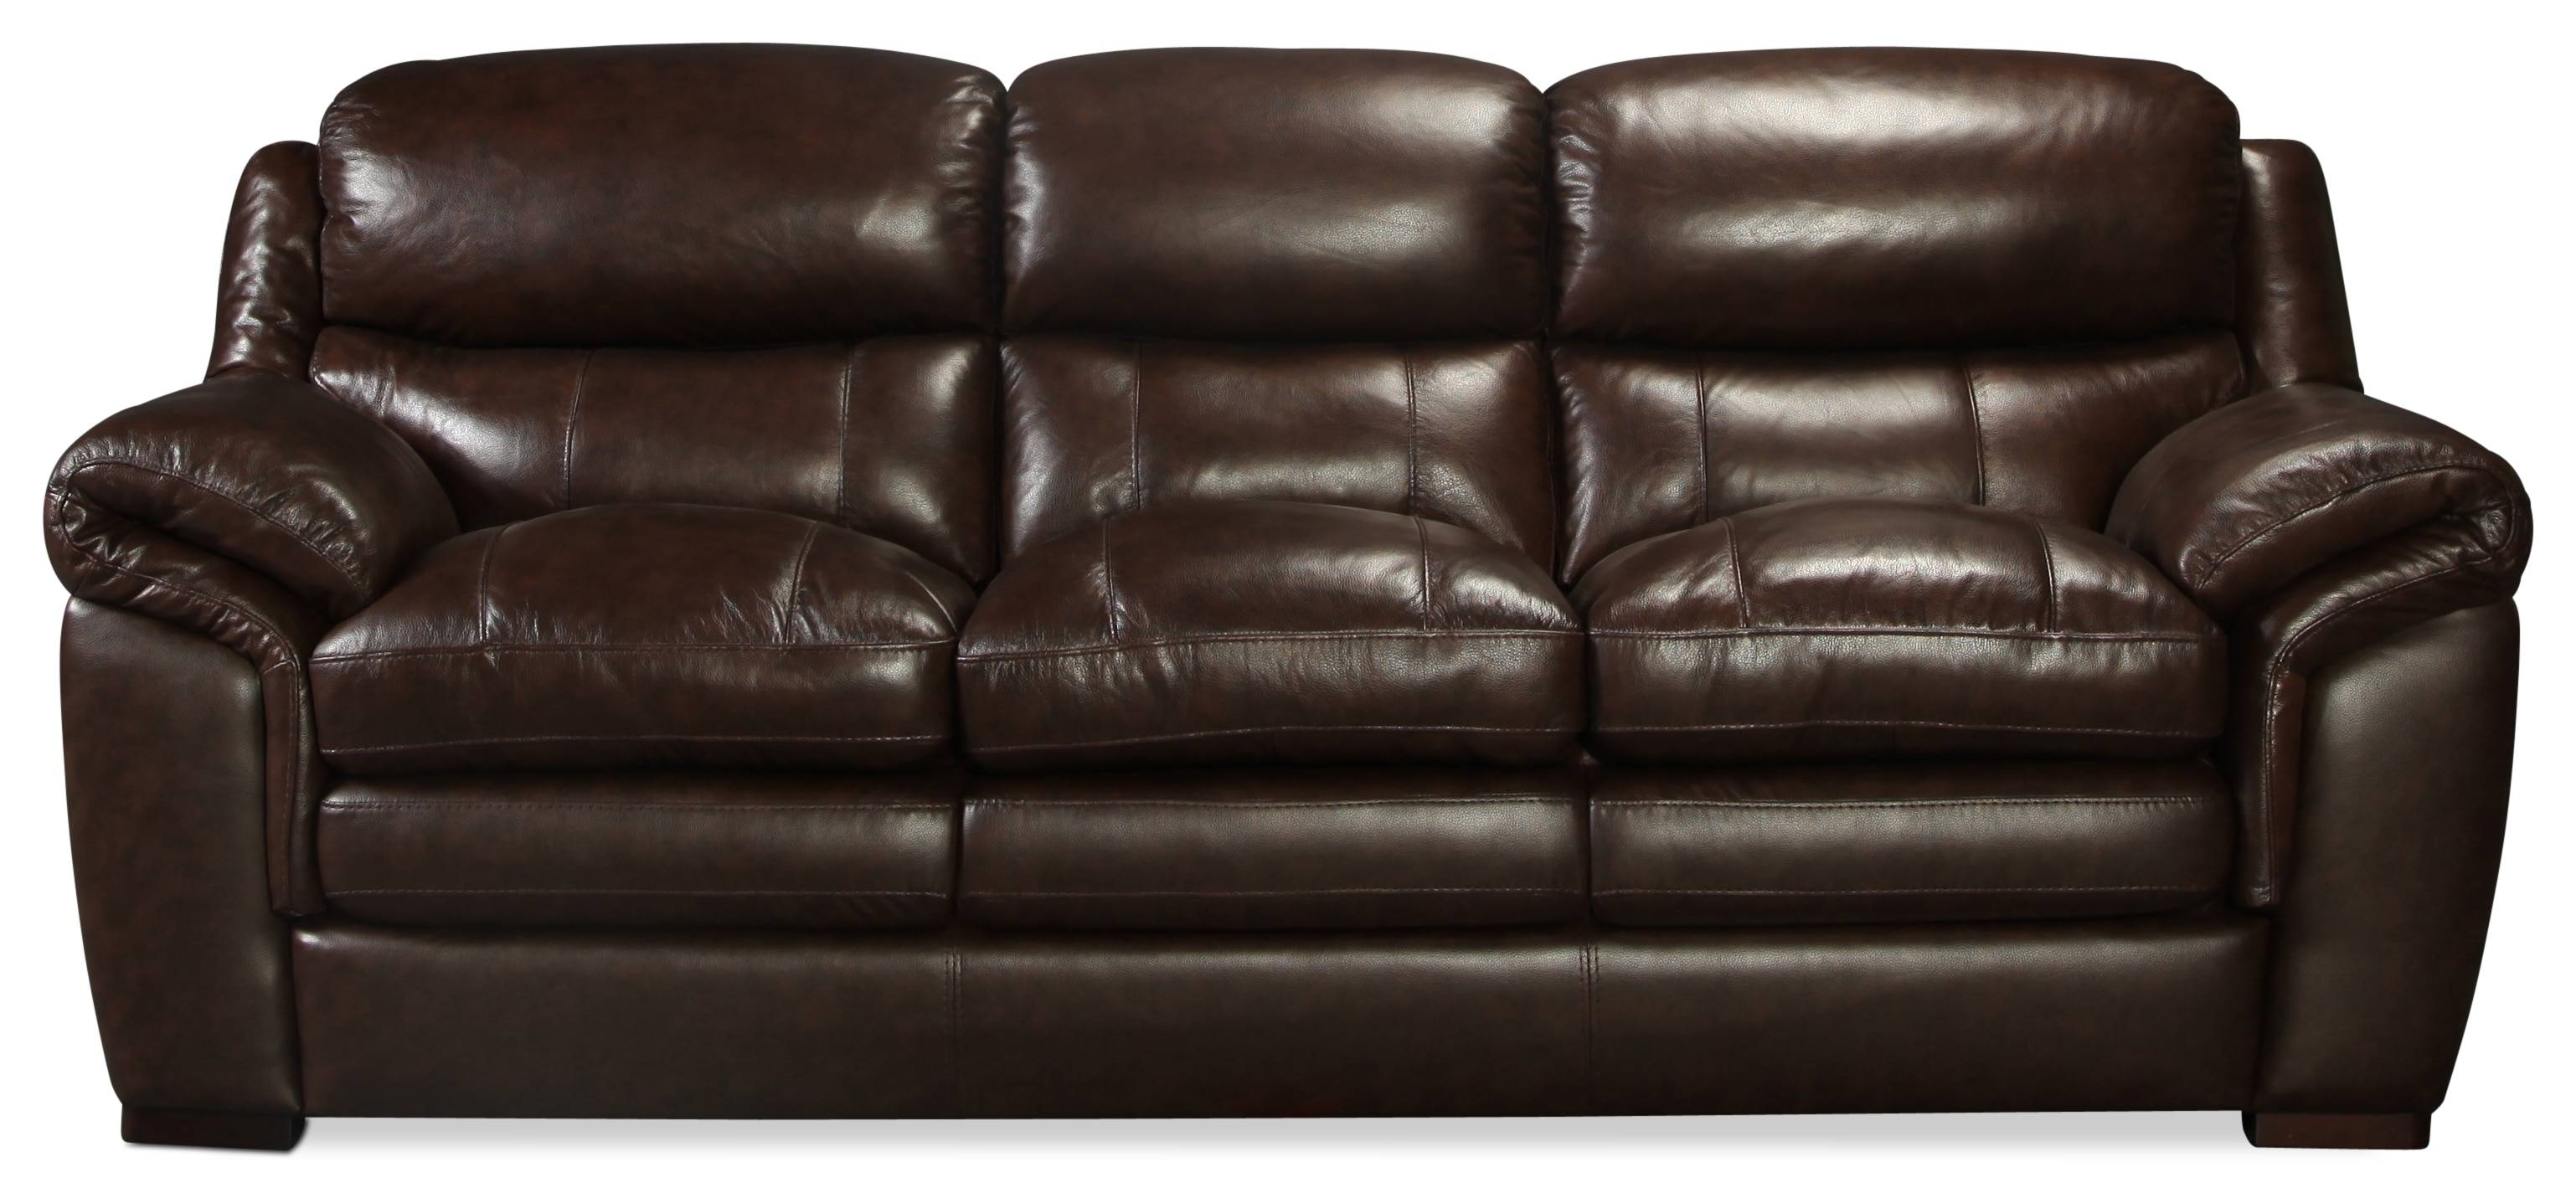 Rowan Leather Sofa | Levin Furniture With Regard To Sealy Leather Sofas (Photo 11 of 15)